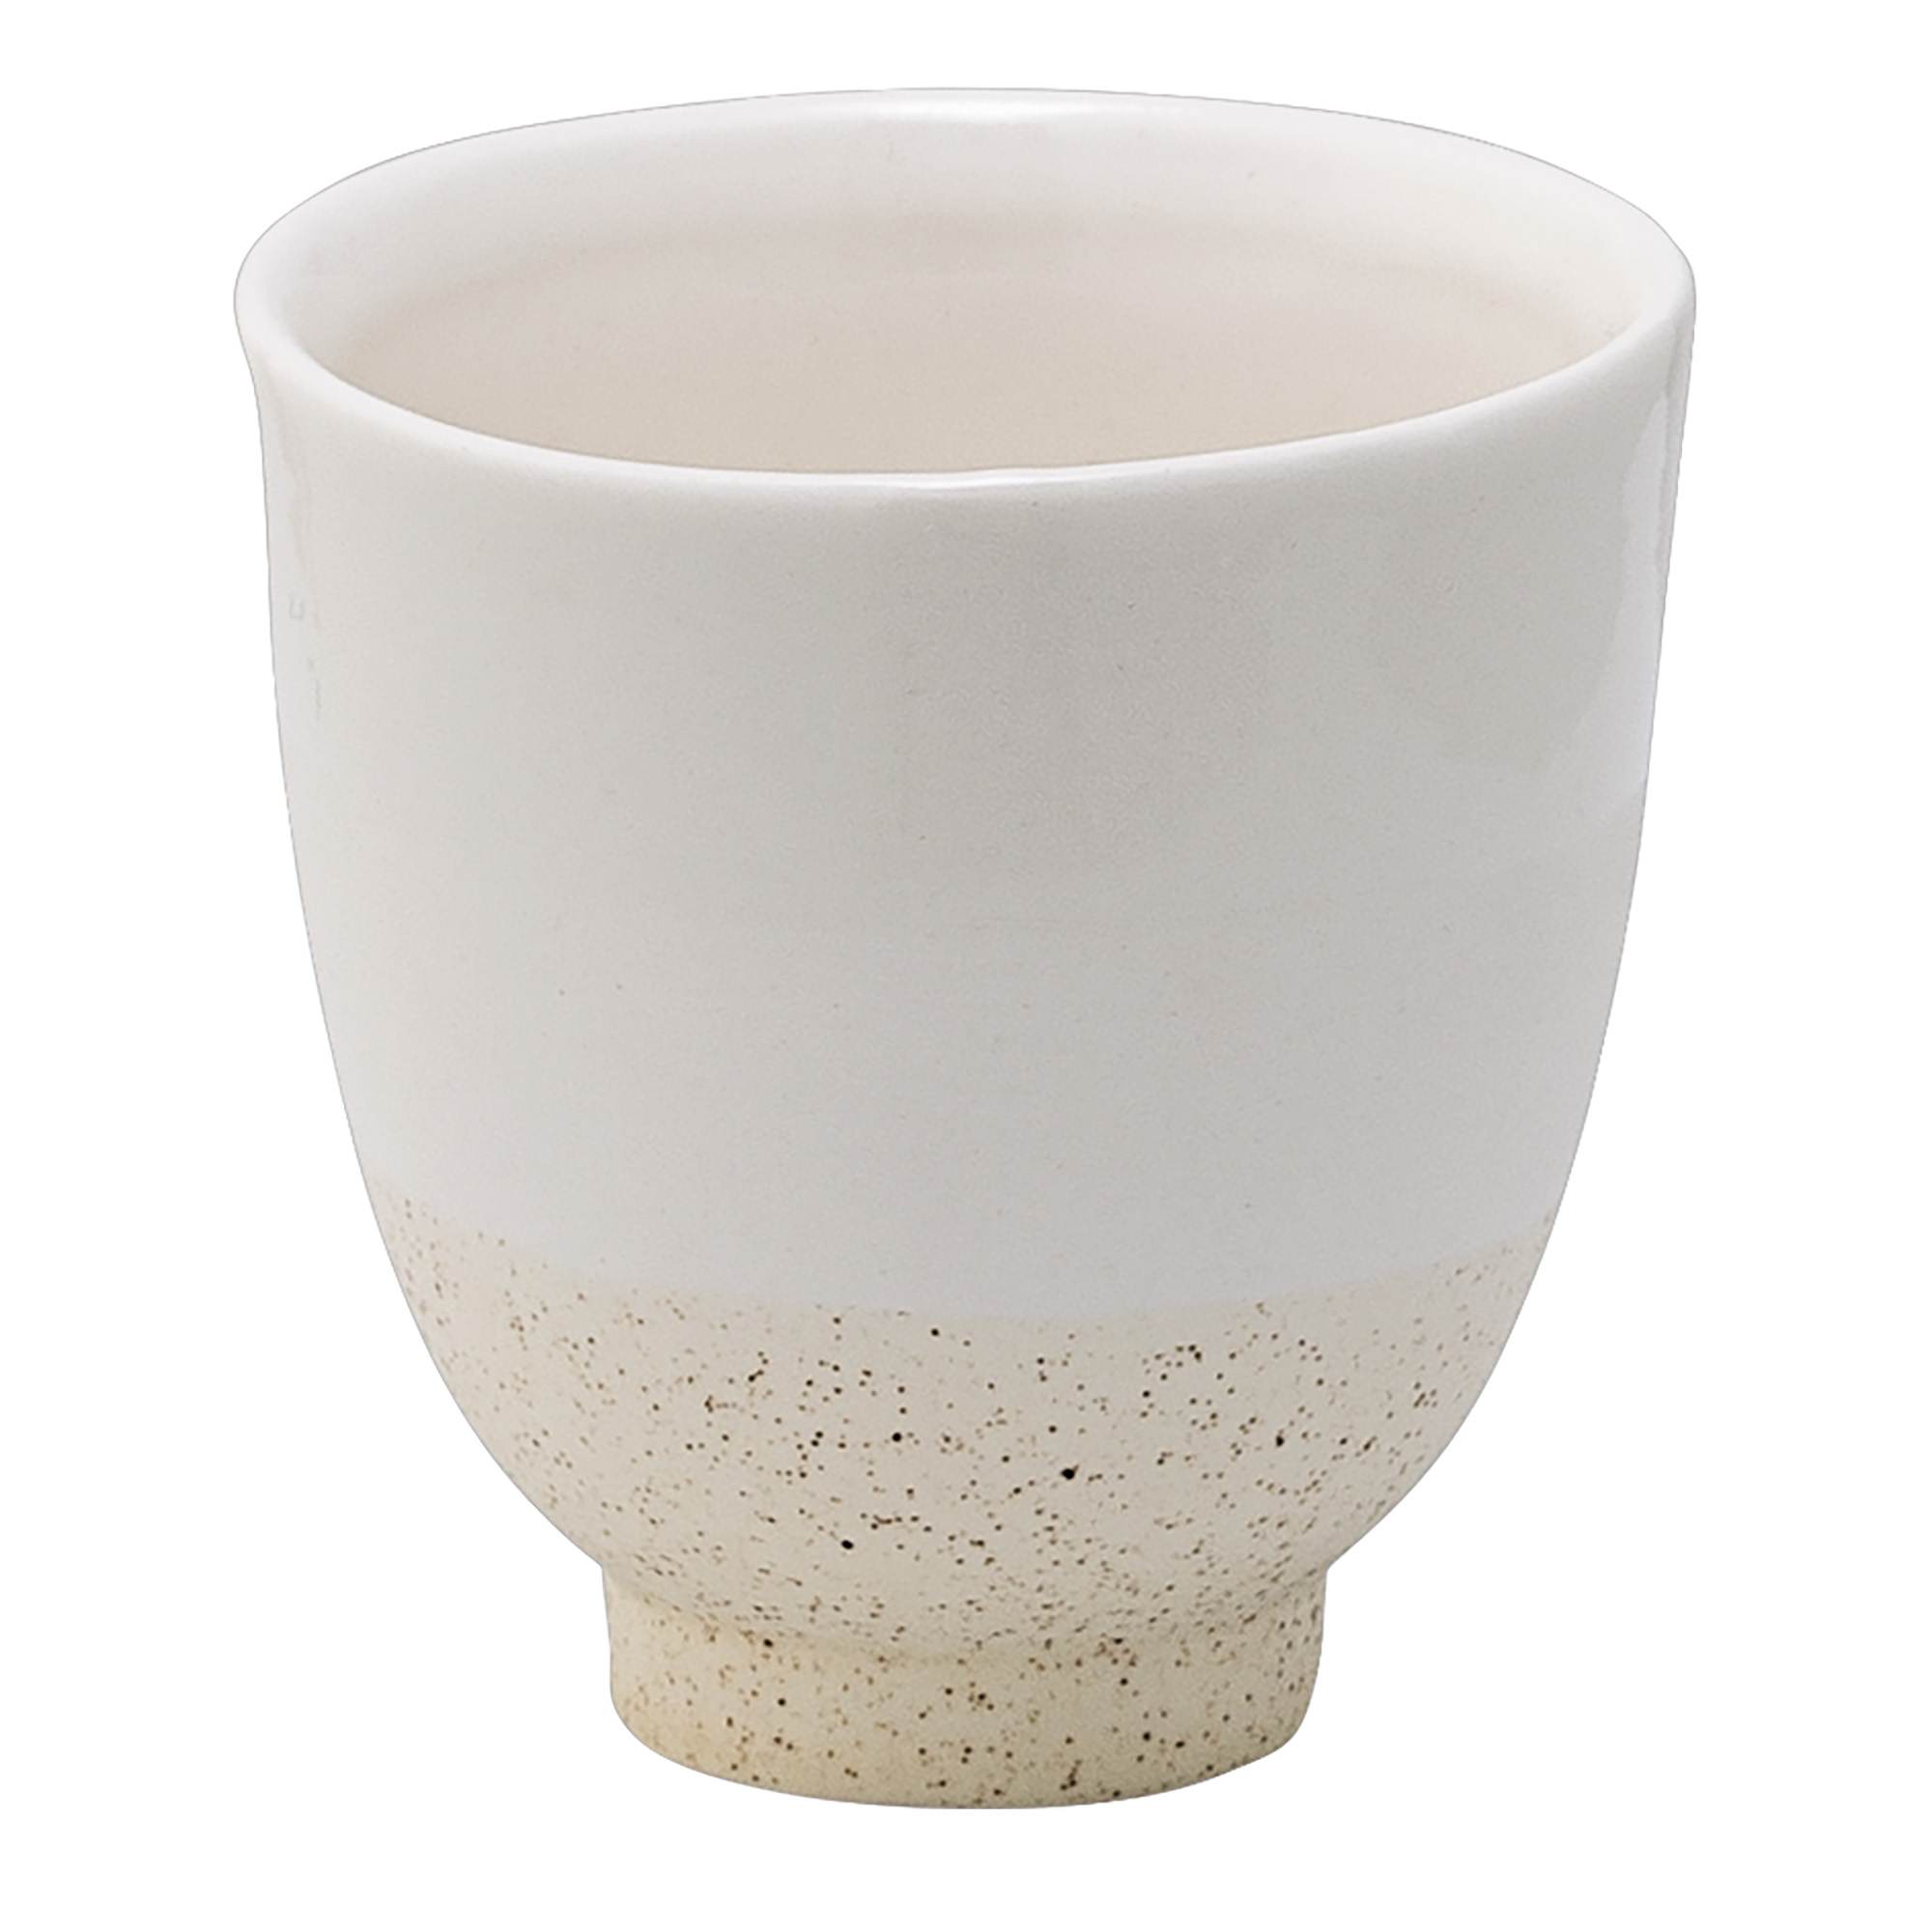 Image of   Cup, offwhite matte/shiny